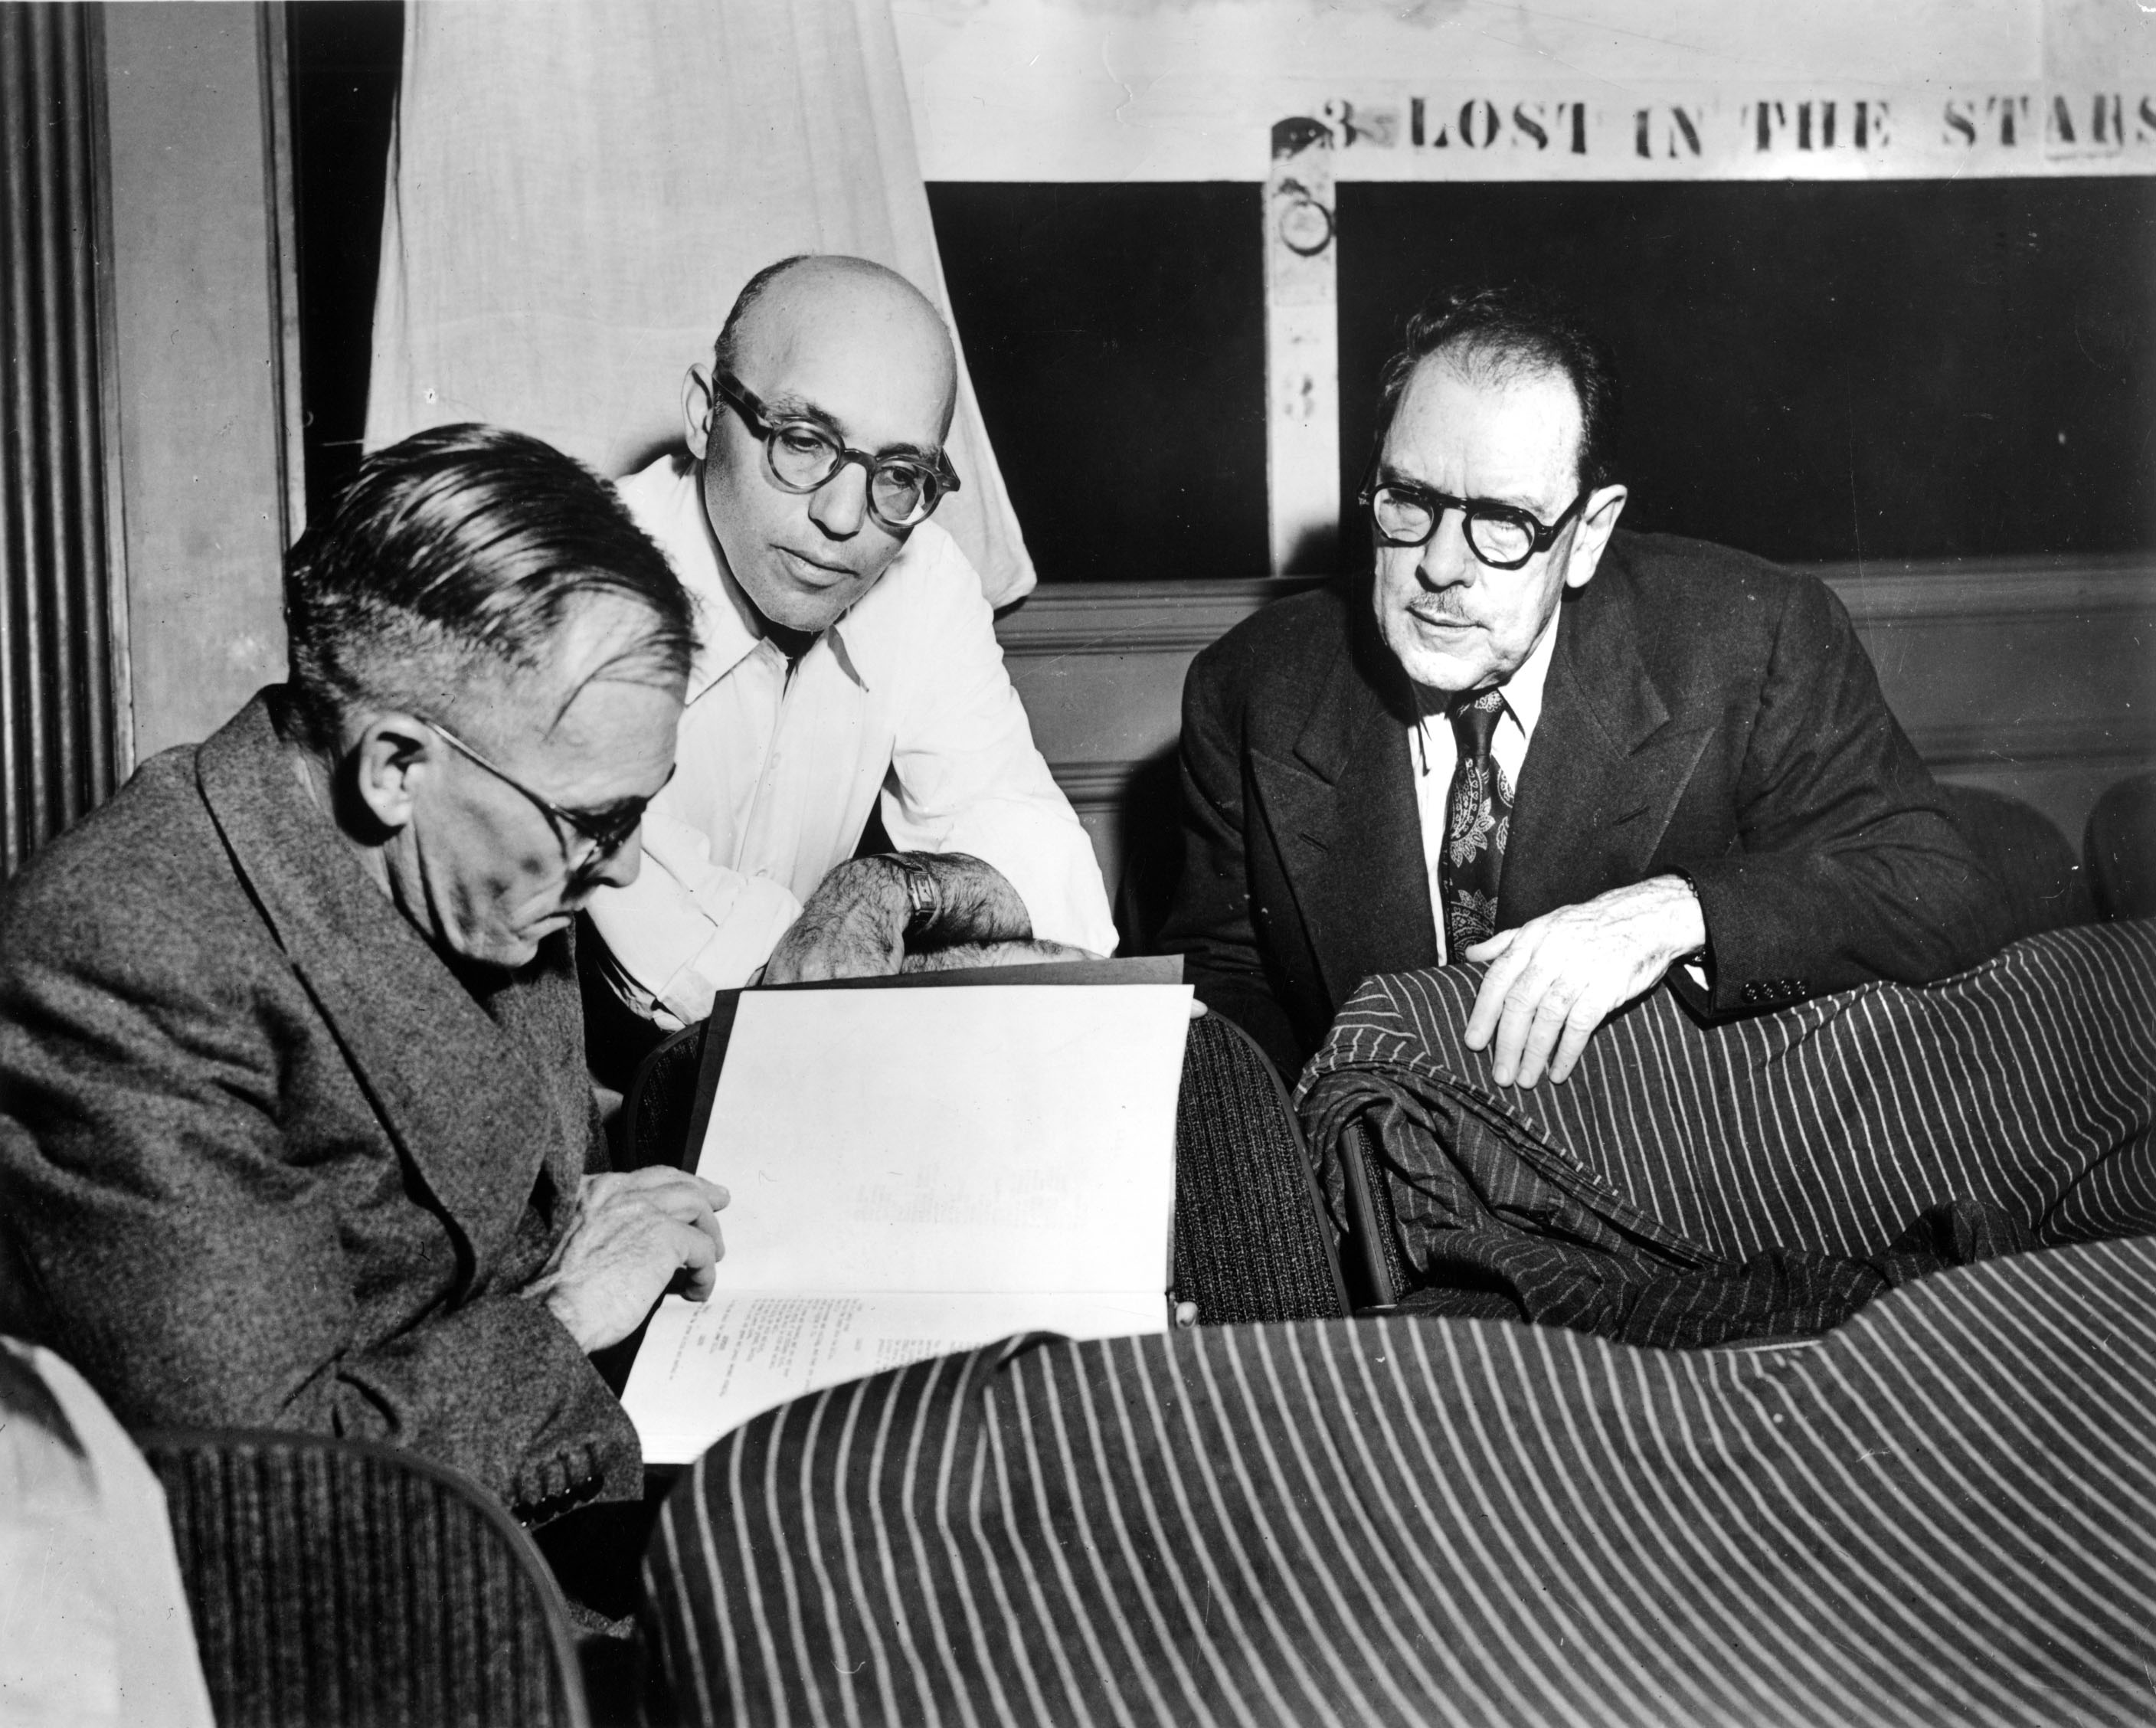 LOST IN THE STARS authors Kurt Weill and Maxwell Anderson with novelist Alan Paton.